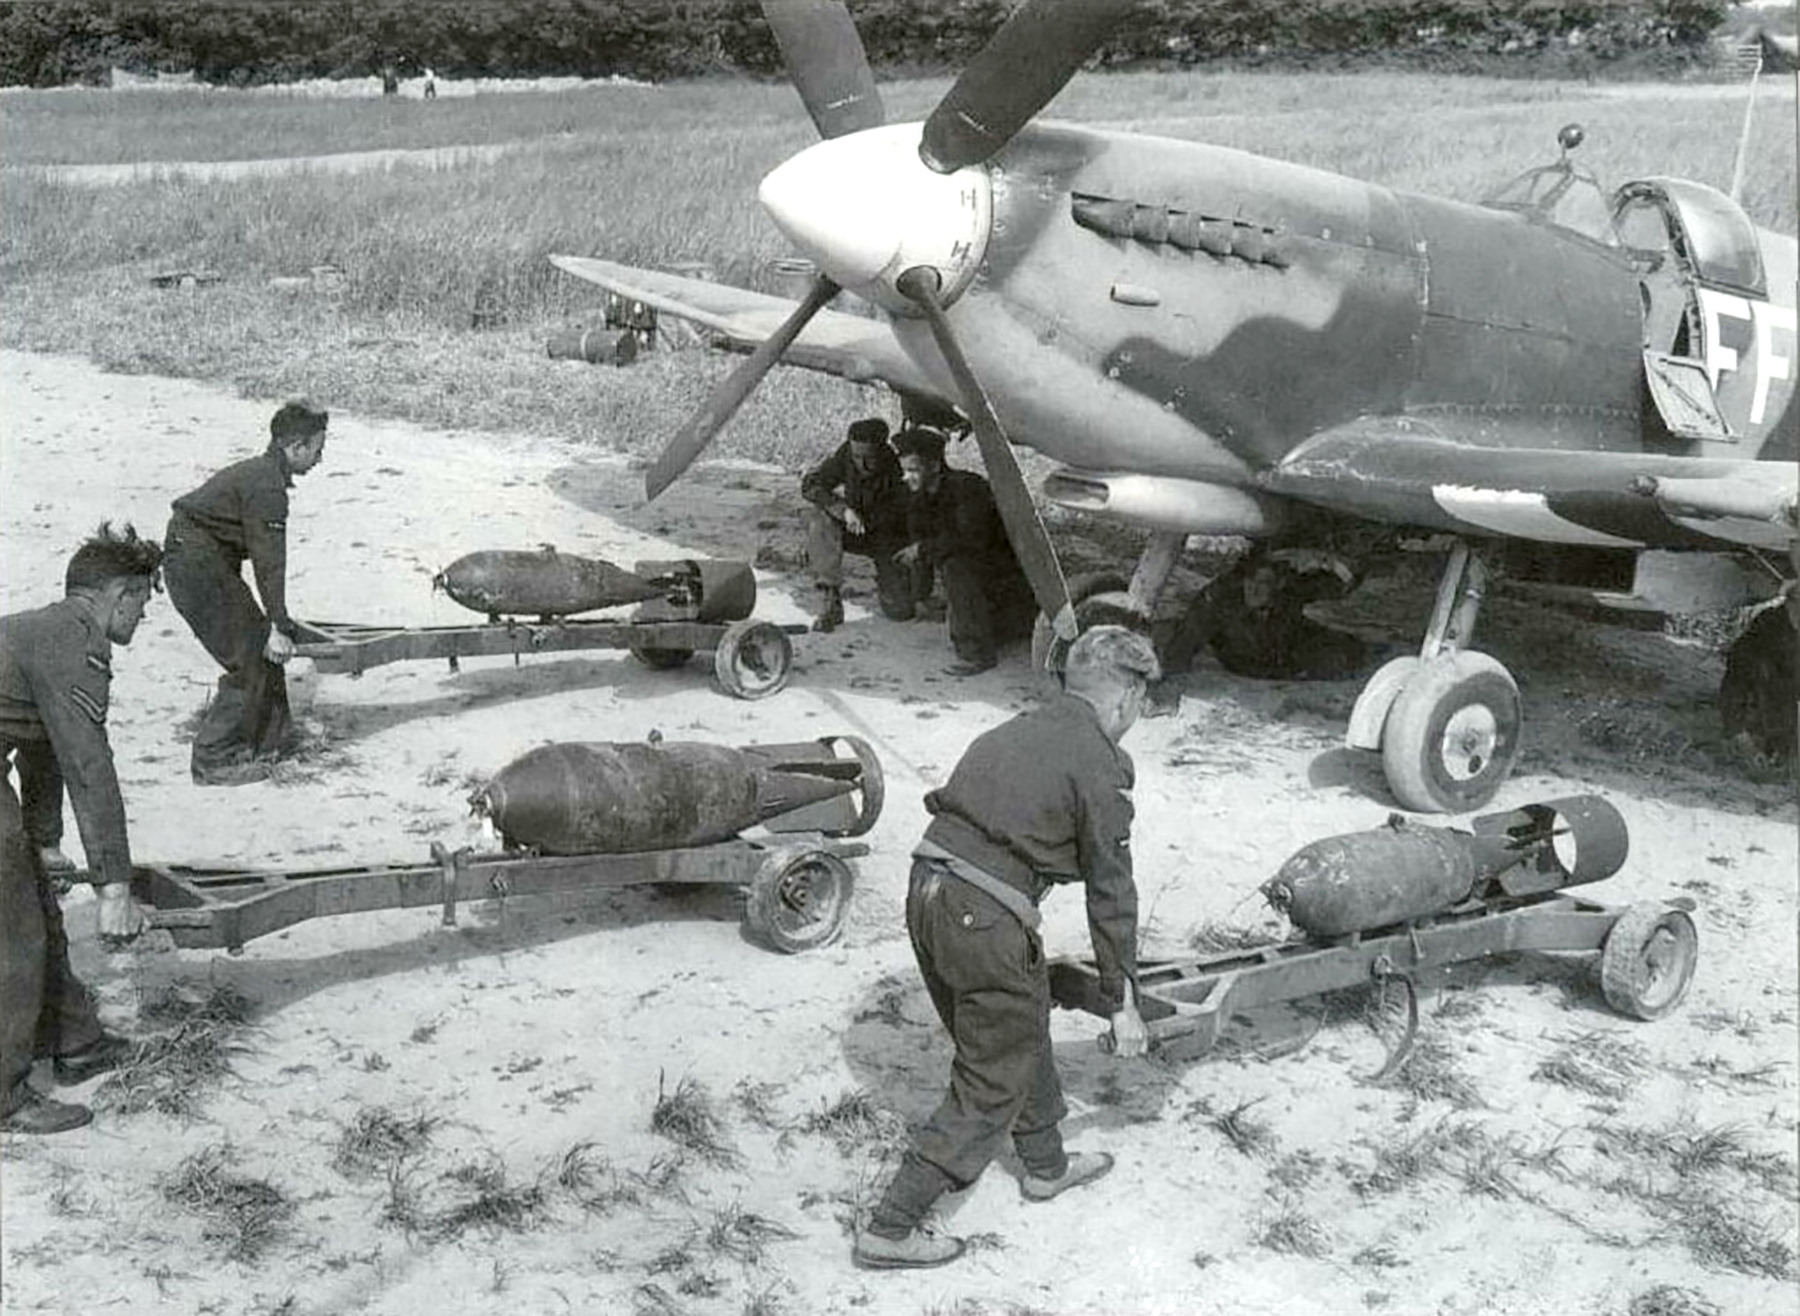 Spitfire MkIX RAF 132Sqn FF being loaded with 2x250 1x500 01